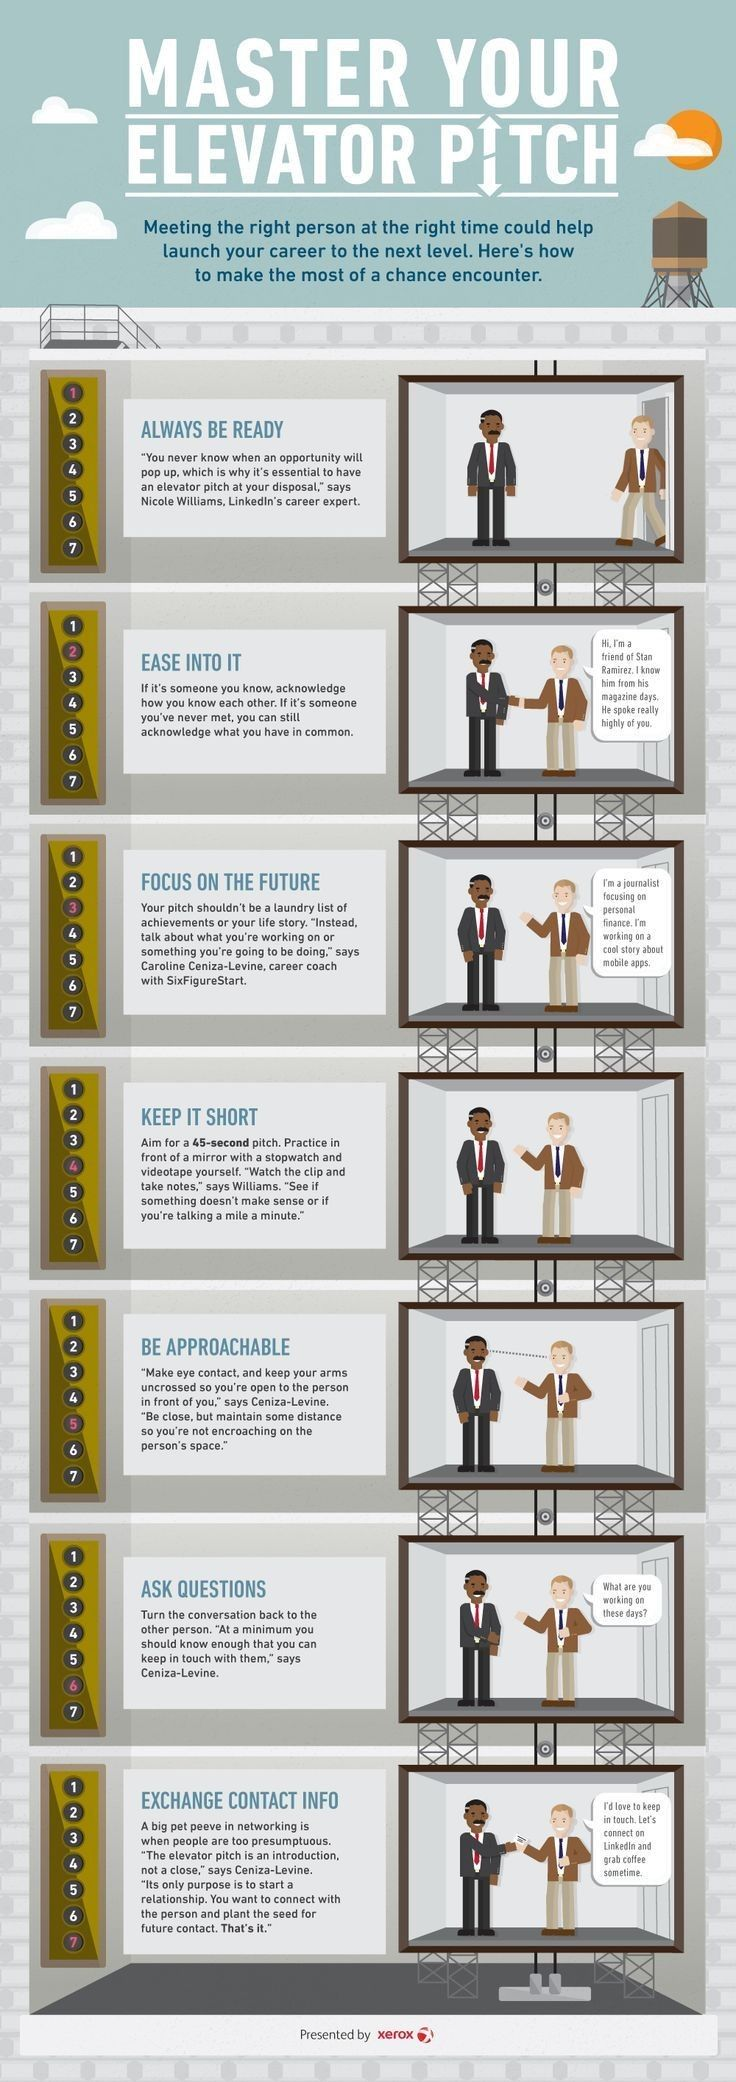 Nail that elevator pitch! Career, Career success